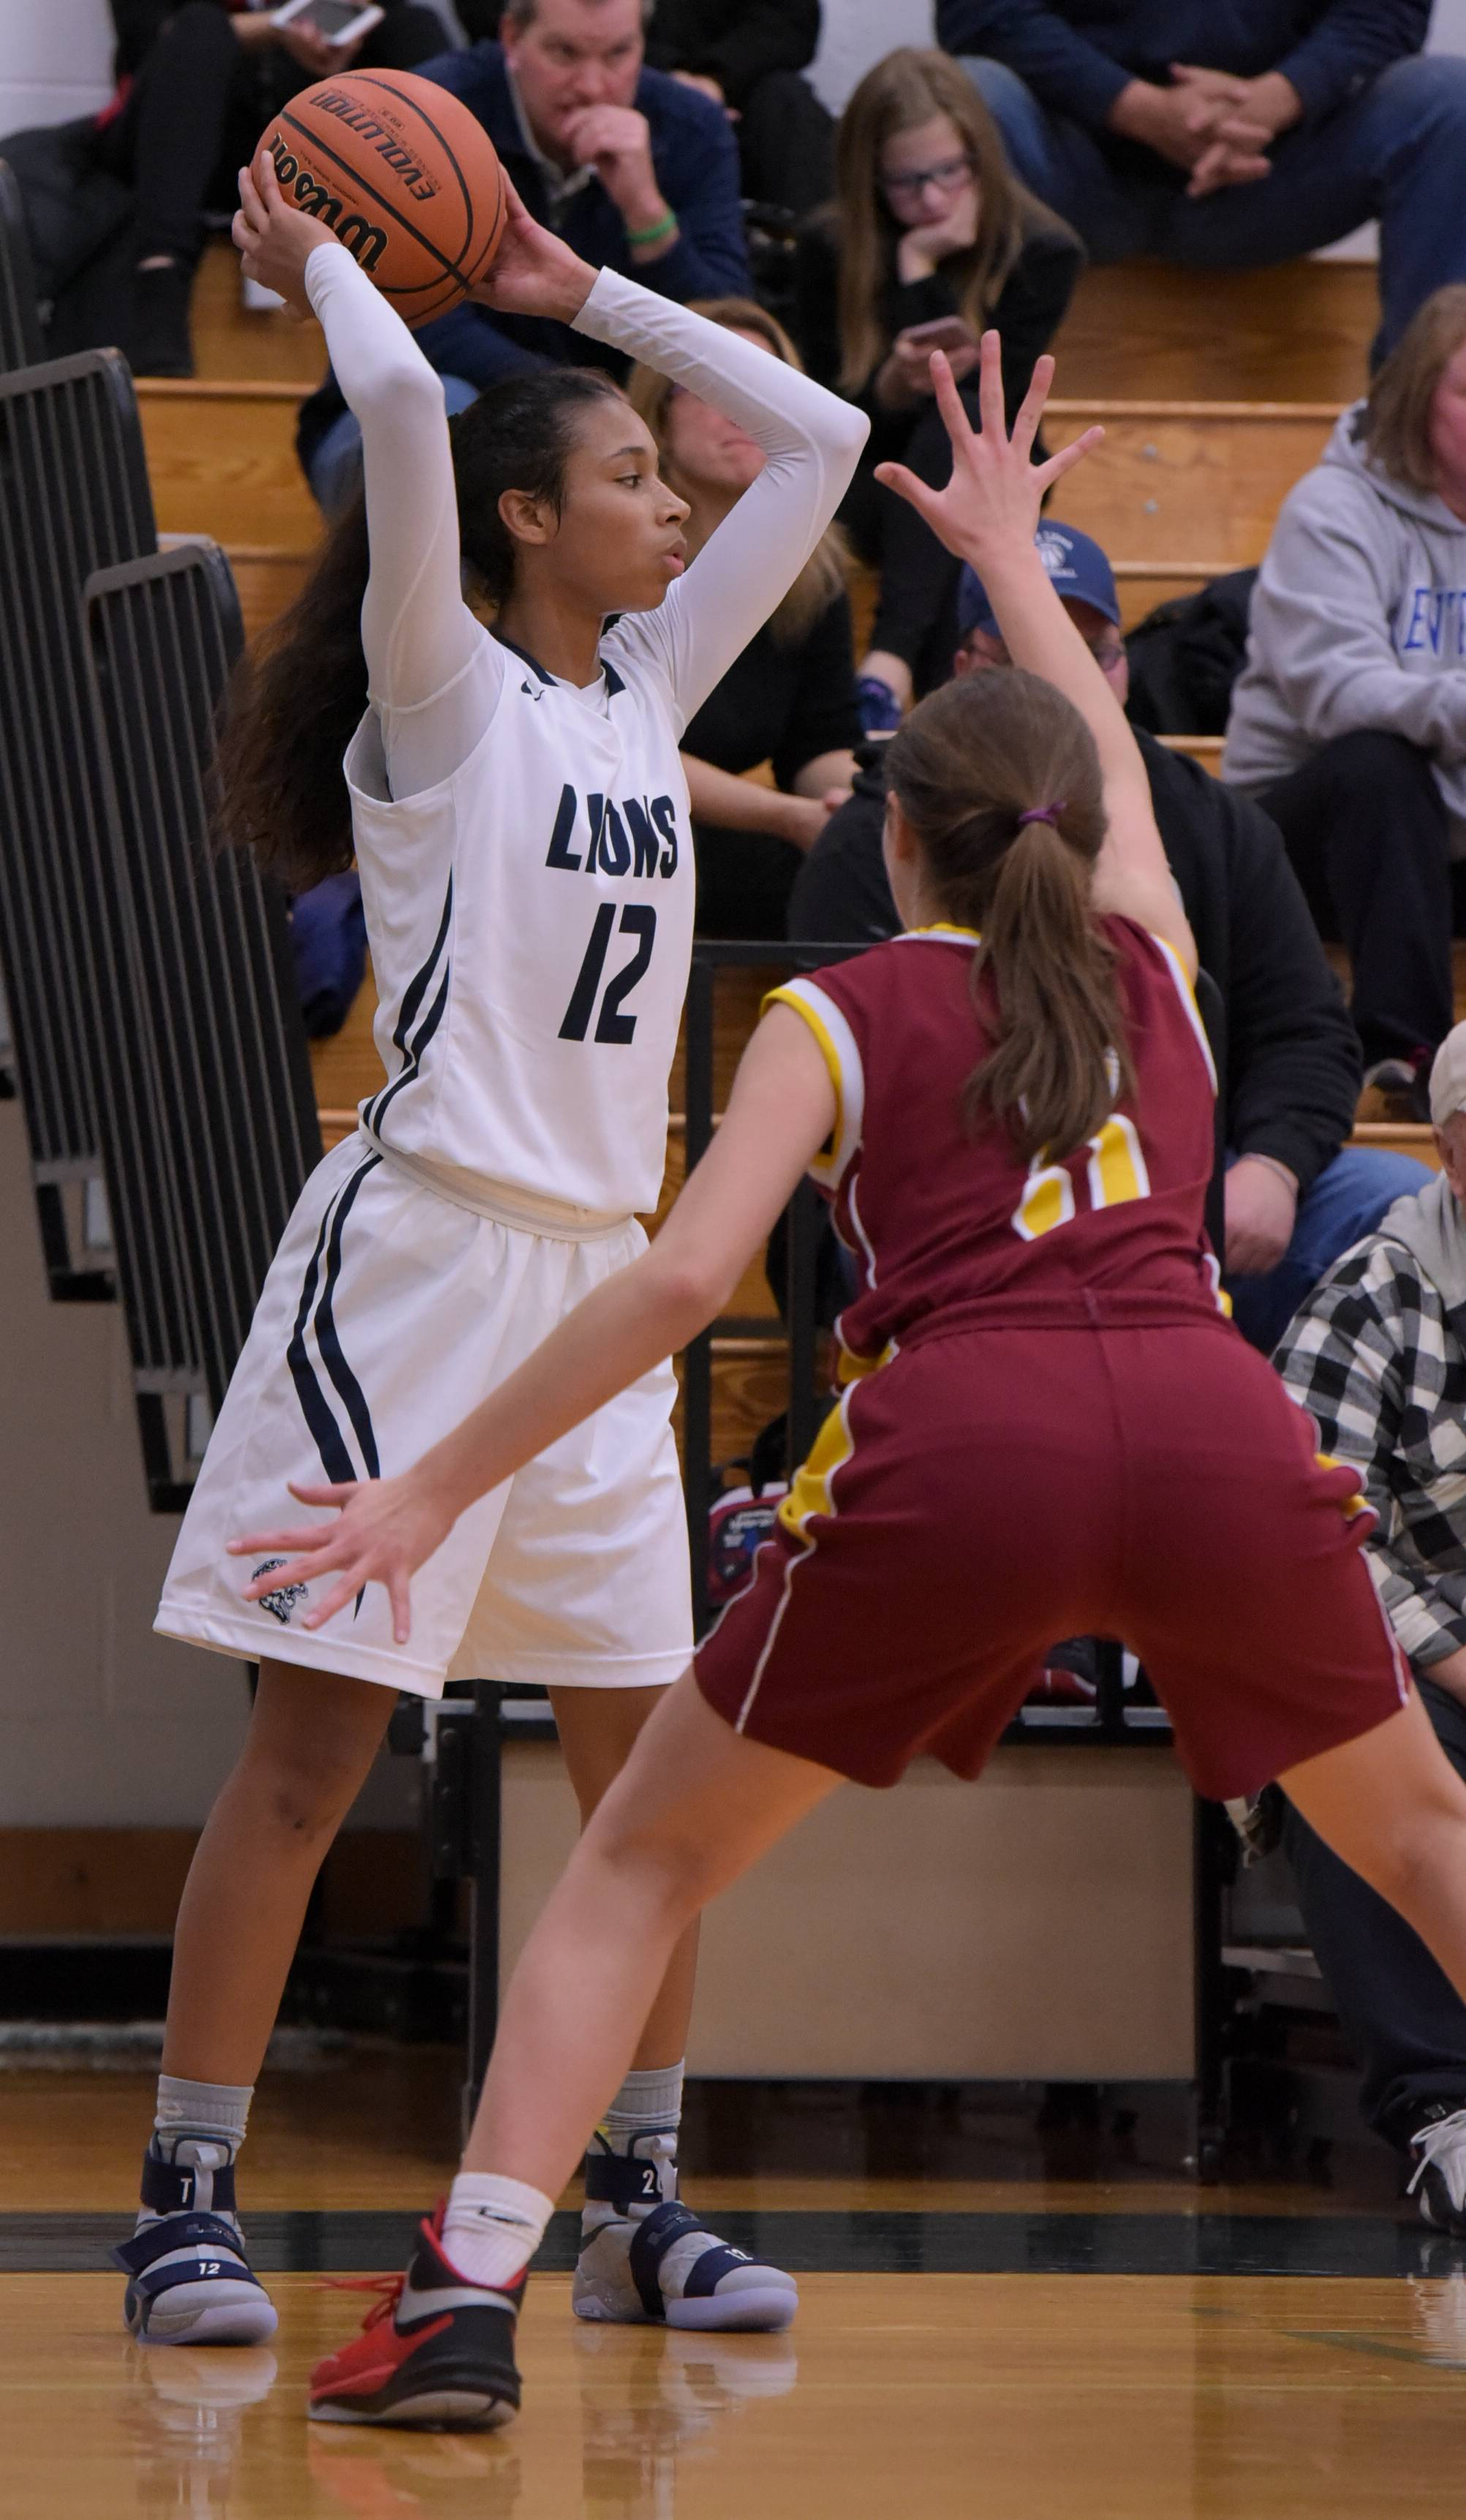 westmont girls Daily herald covers westmont high school's basketball team with articles, photos, schedules/scores, rosters and more.